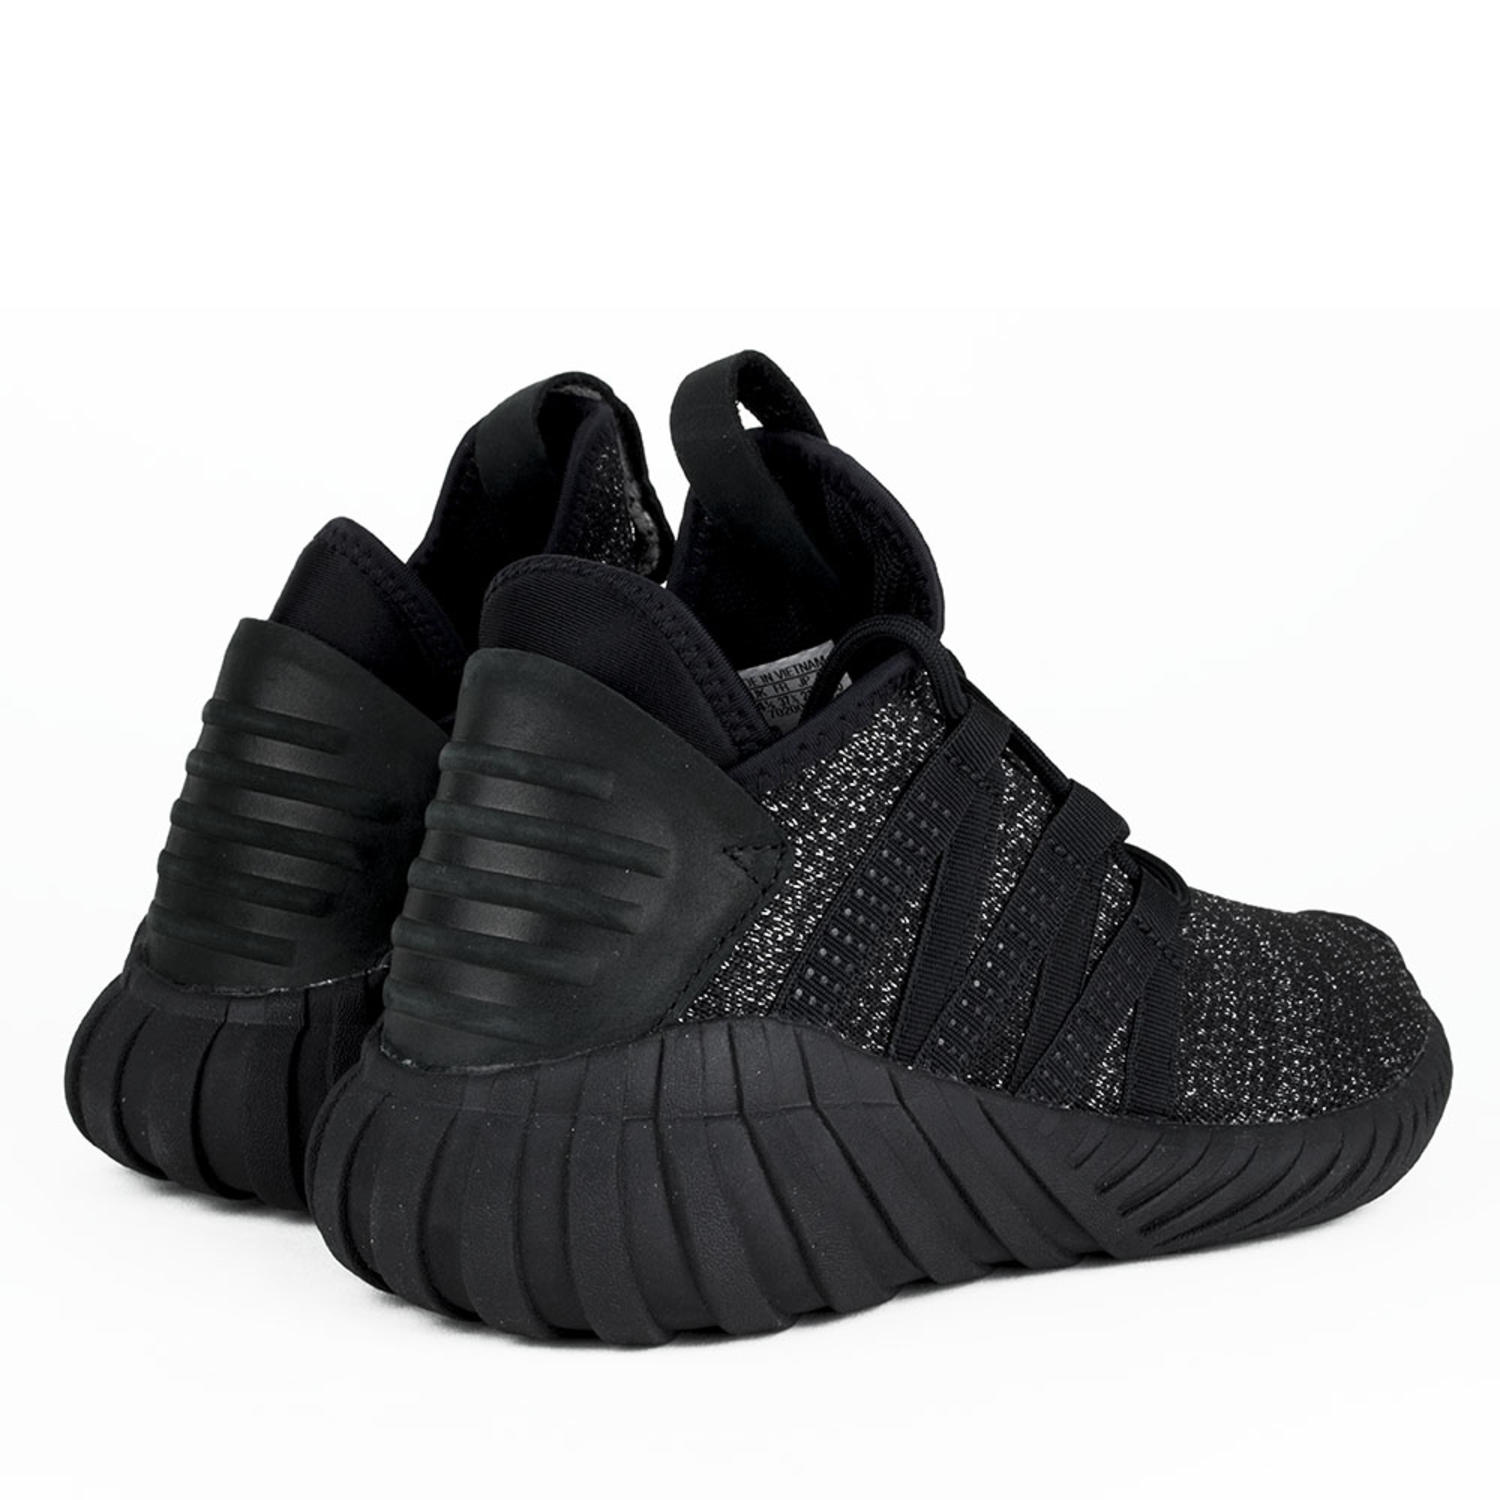 Cheap Adidas Tubular Primeknit 'Carbon Black' Available Now Yeezys Sale